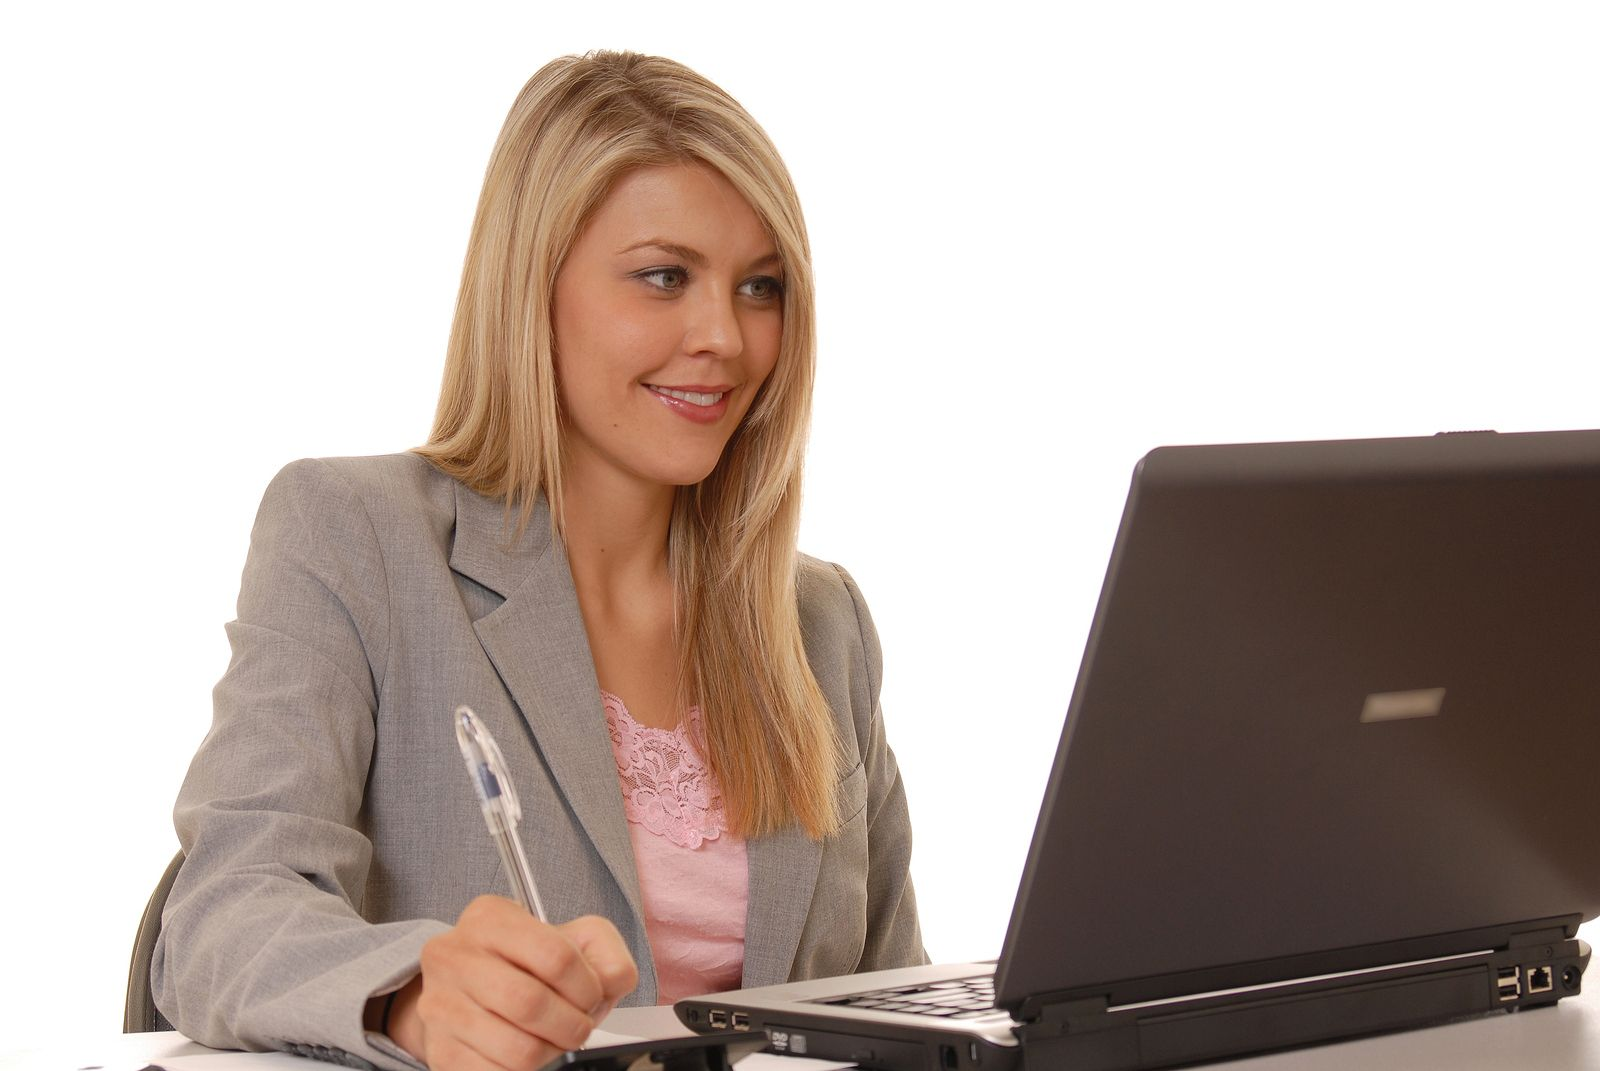 If You Don T Have Money To Start Up New Business And You Are Looking Small Finance Support For Short Term Loans T Money Lending Payday Loans Installment Loans